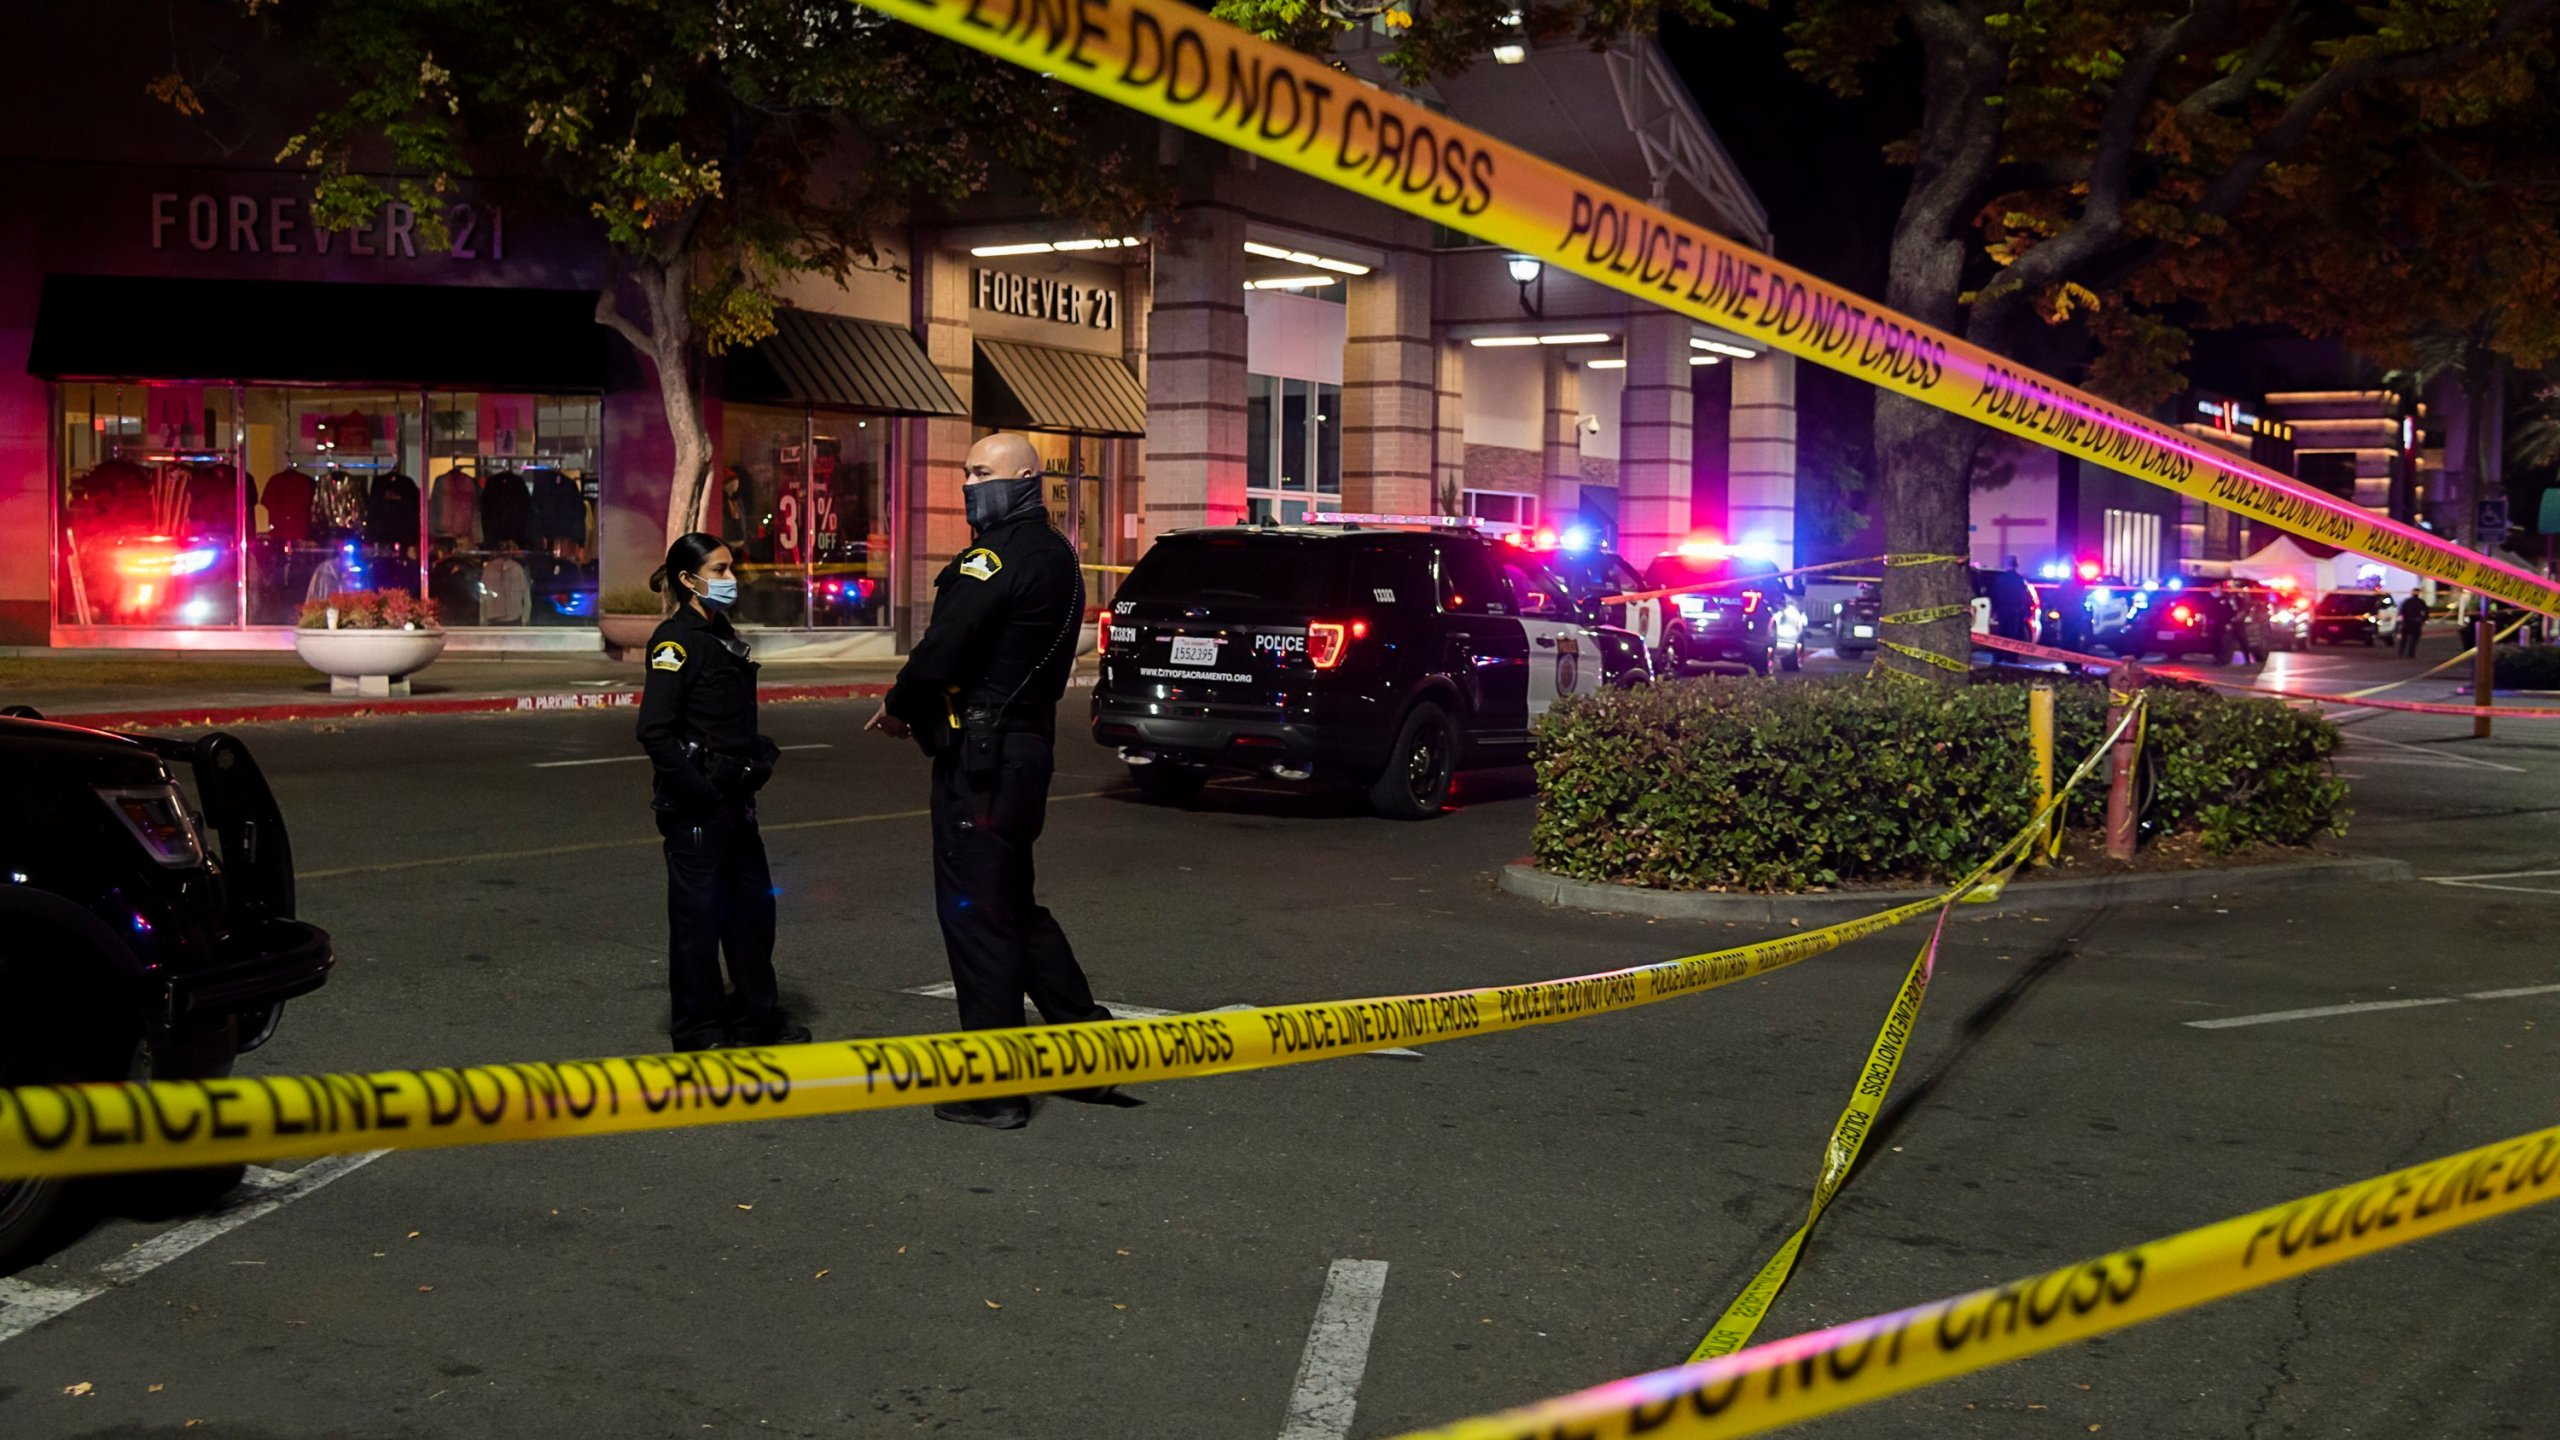 In this Nov. 27, 2020 file photo Police stand outside Arden Fair Mall after a shooting that left one person dead and another critically injured in Sacramento, Calif. Homicides in California jumped 31% last year, the deadliest year since 2007, according to a report issued by the state attorney general's office, Thursday, July 1, 2021. (Paul Kitagaki Jr./The Sacramento Bee via AP, File)